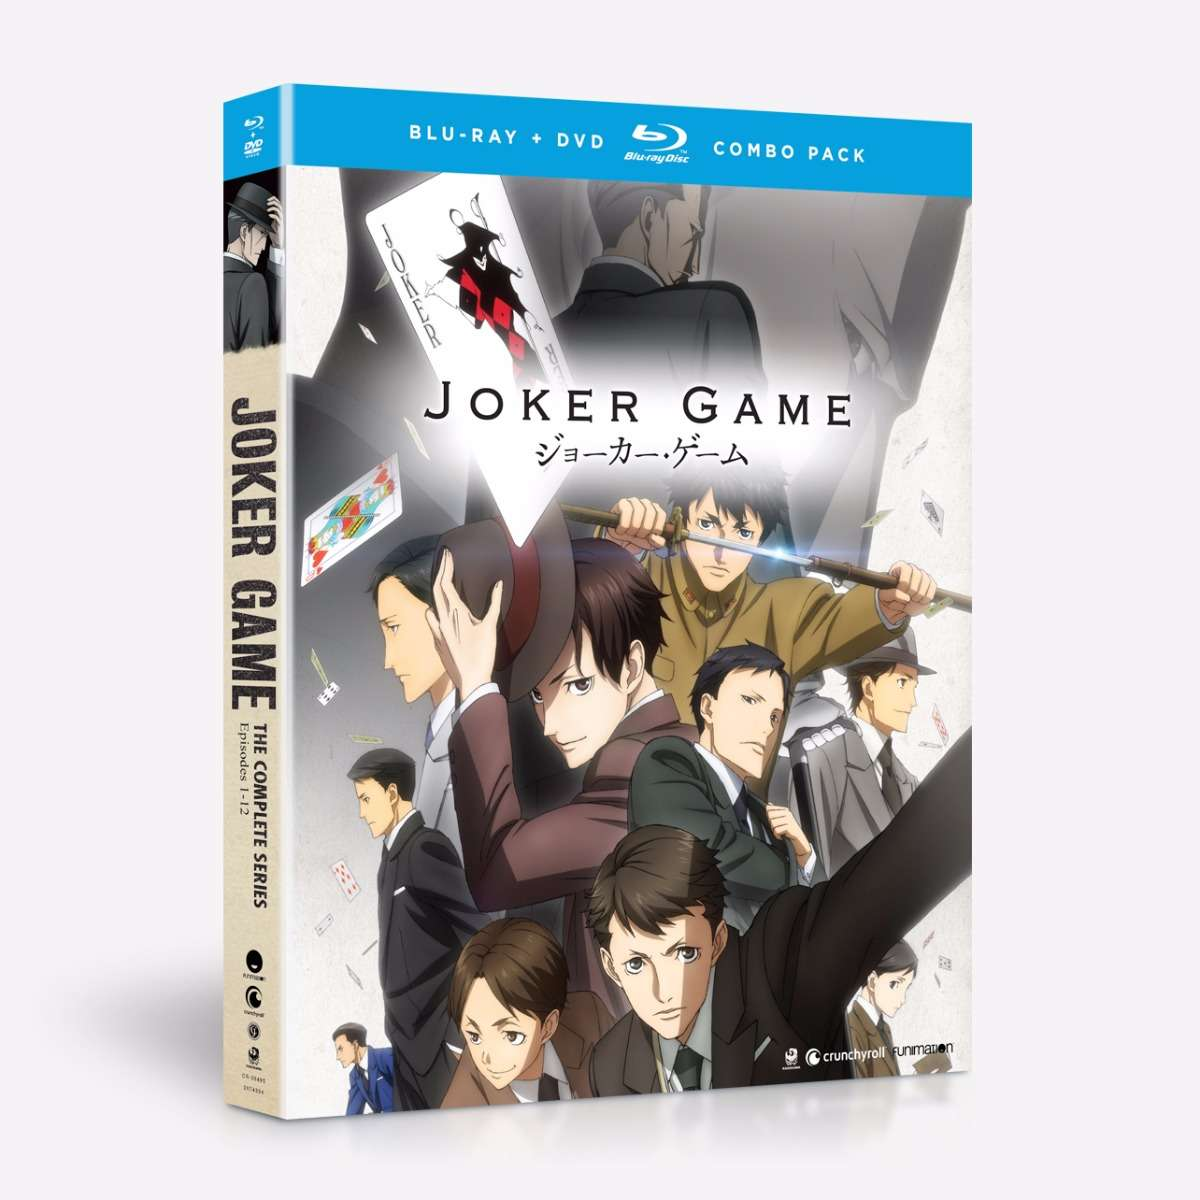 Joker Game Blu-ray/DVD 704400084959